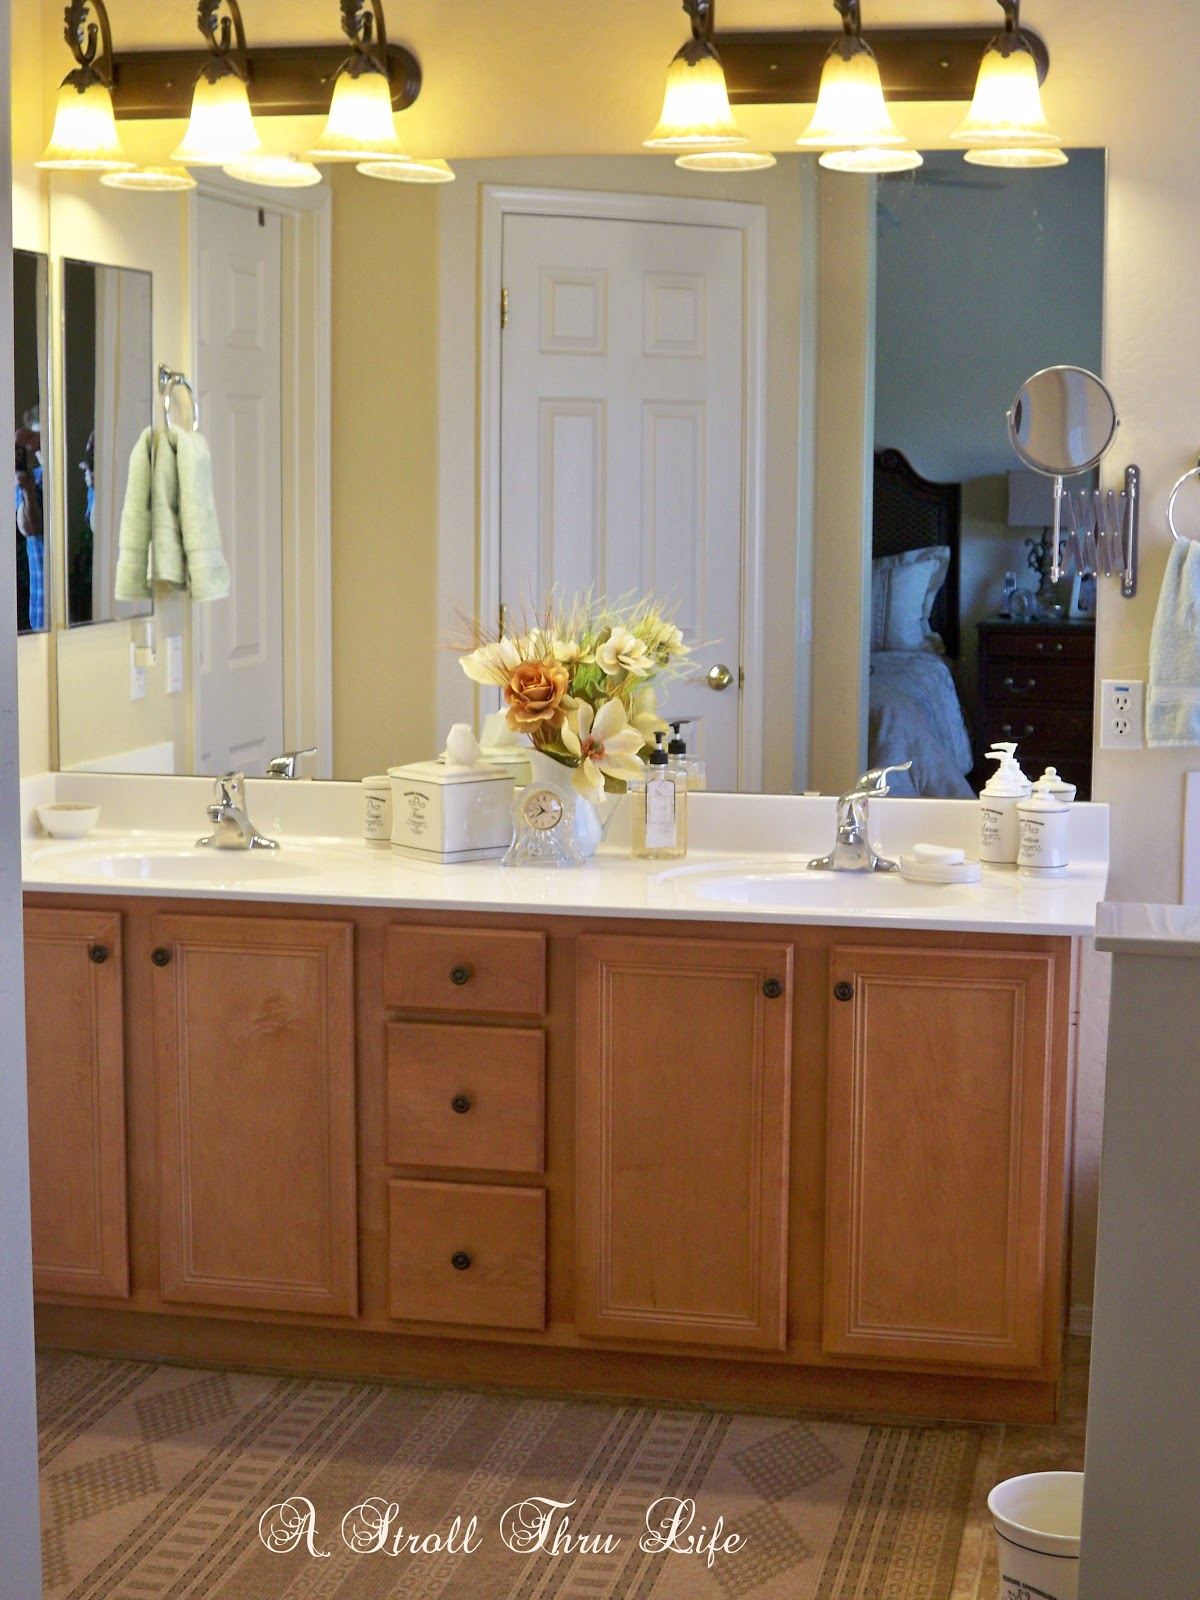 Adding a touch of elegance to the bathroom - www.astrollthrulife.net